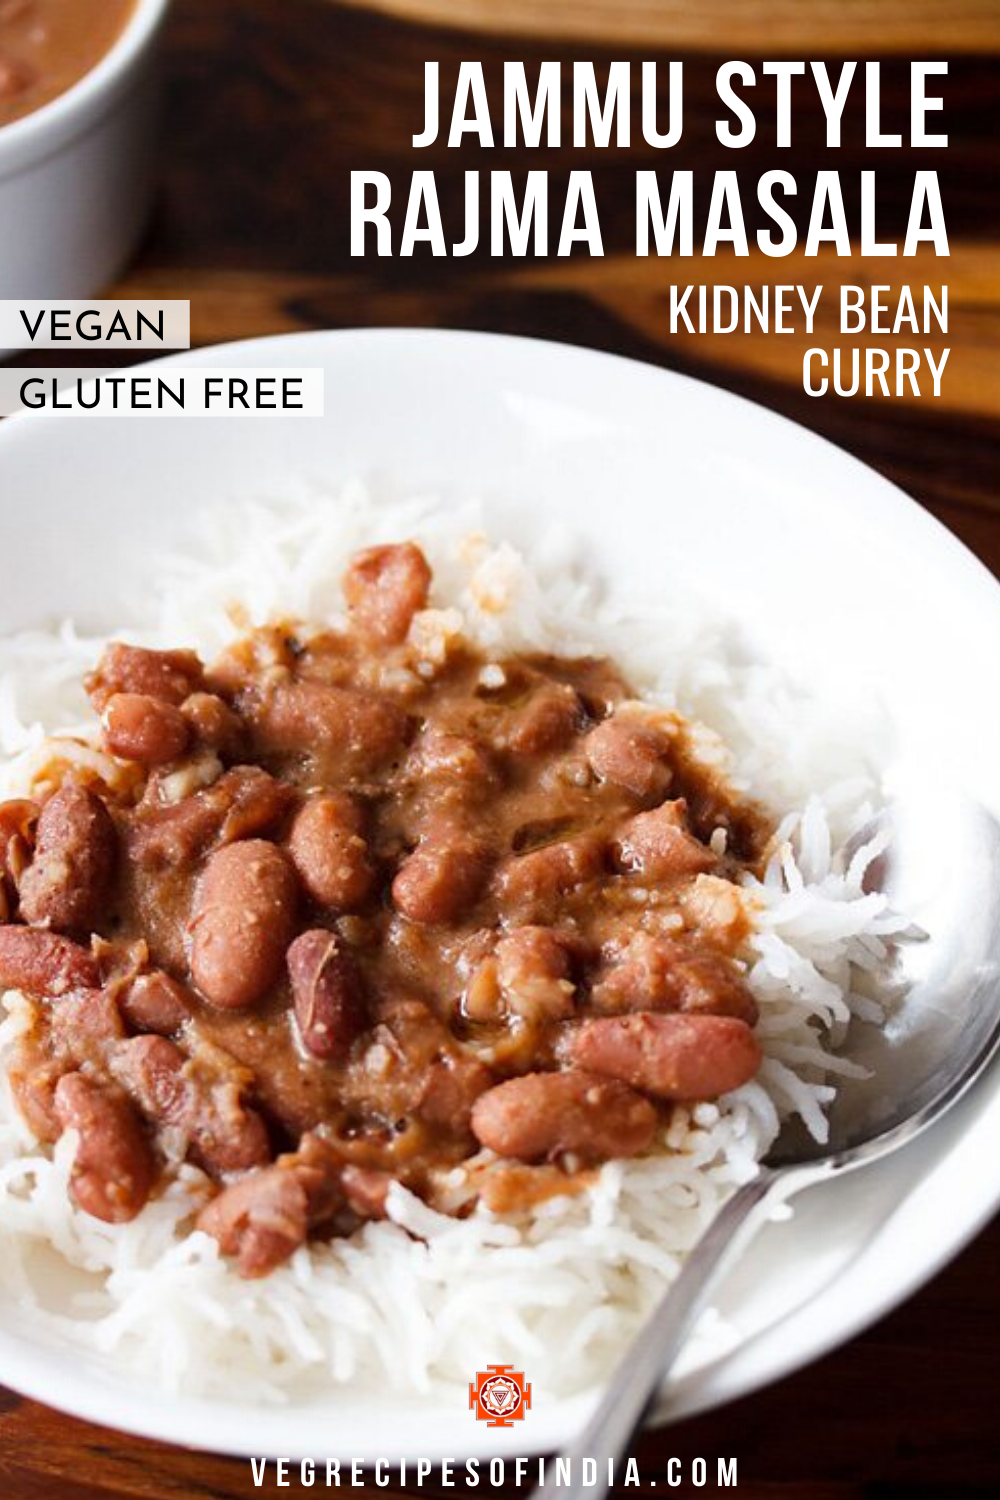 Jammu Style Red Kidney Bean Curry In 2020 Indian Food Recipes Vegetarian Recipes With Kidney Beans Vegetarian Cuisine